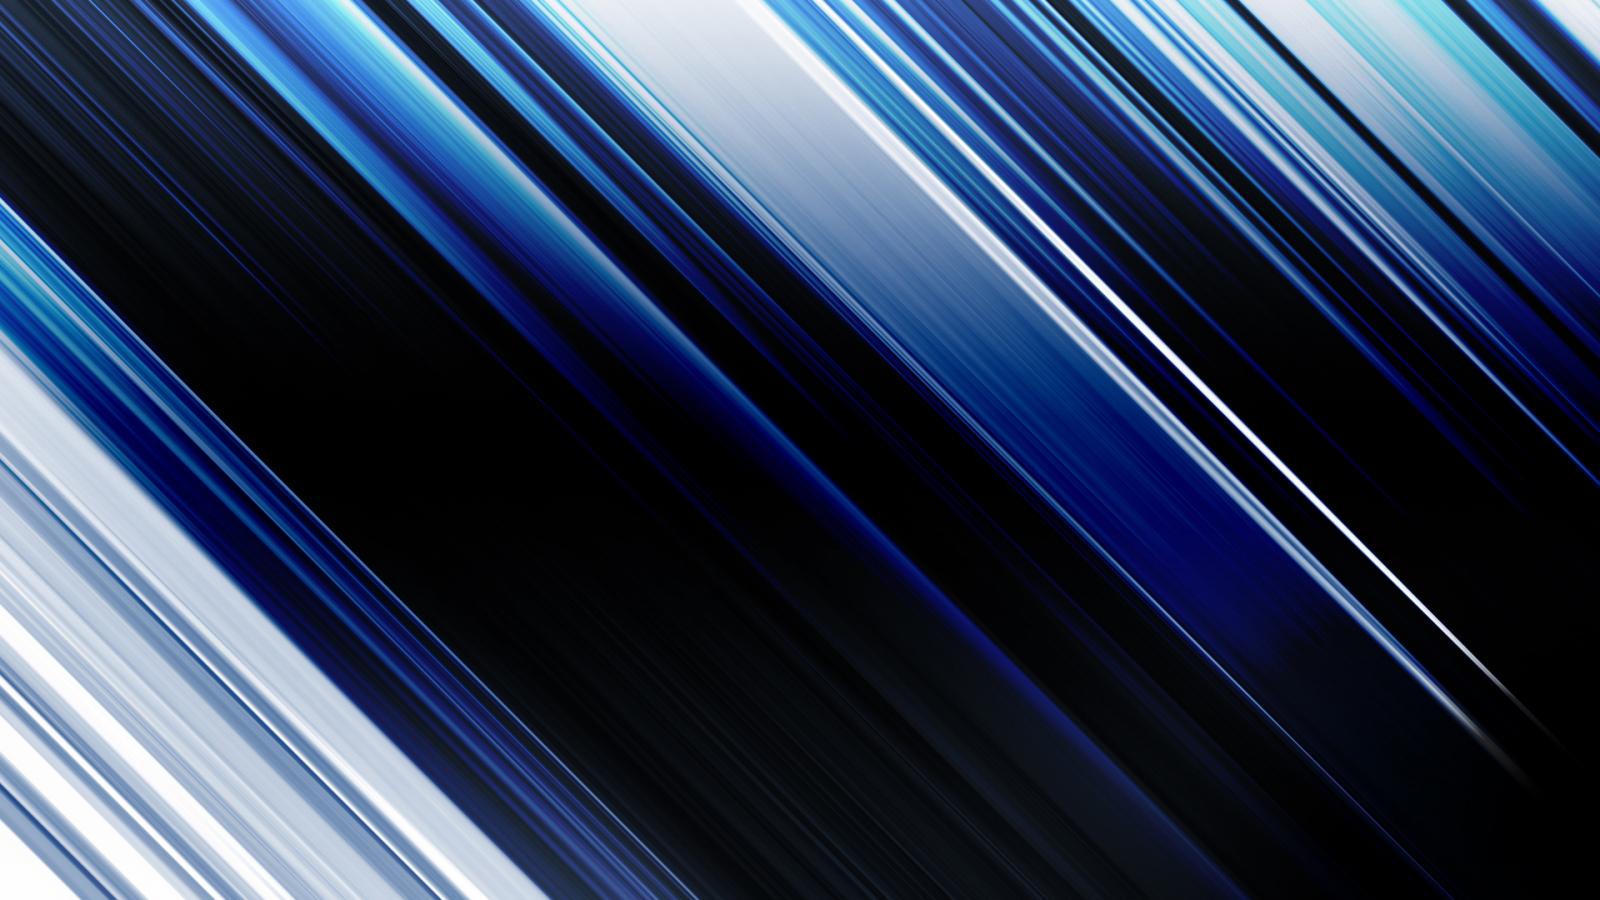 Free Download Abstract Wallpaper Laptop Download 3175